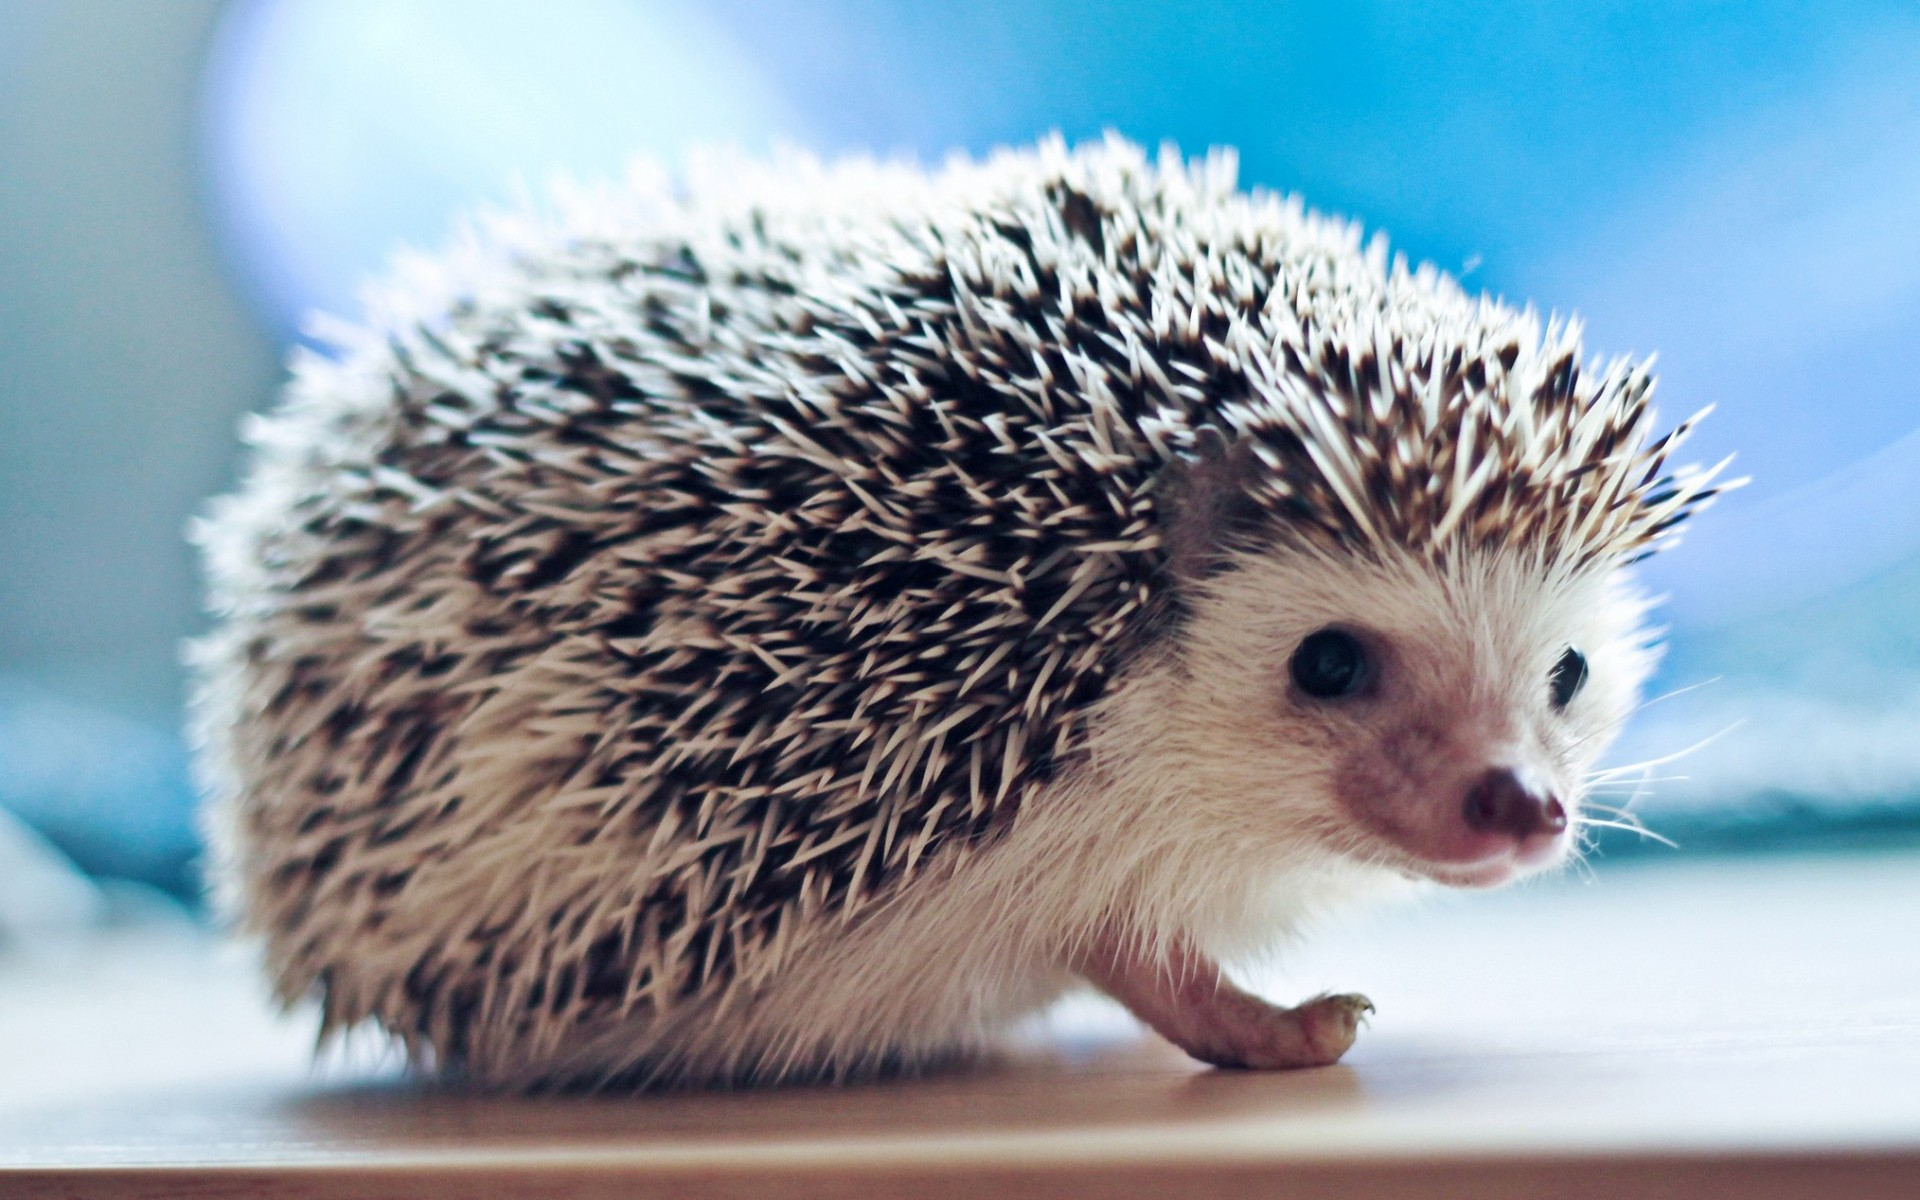 hedgehog wallpaper background